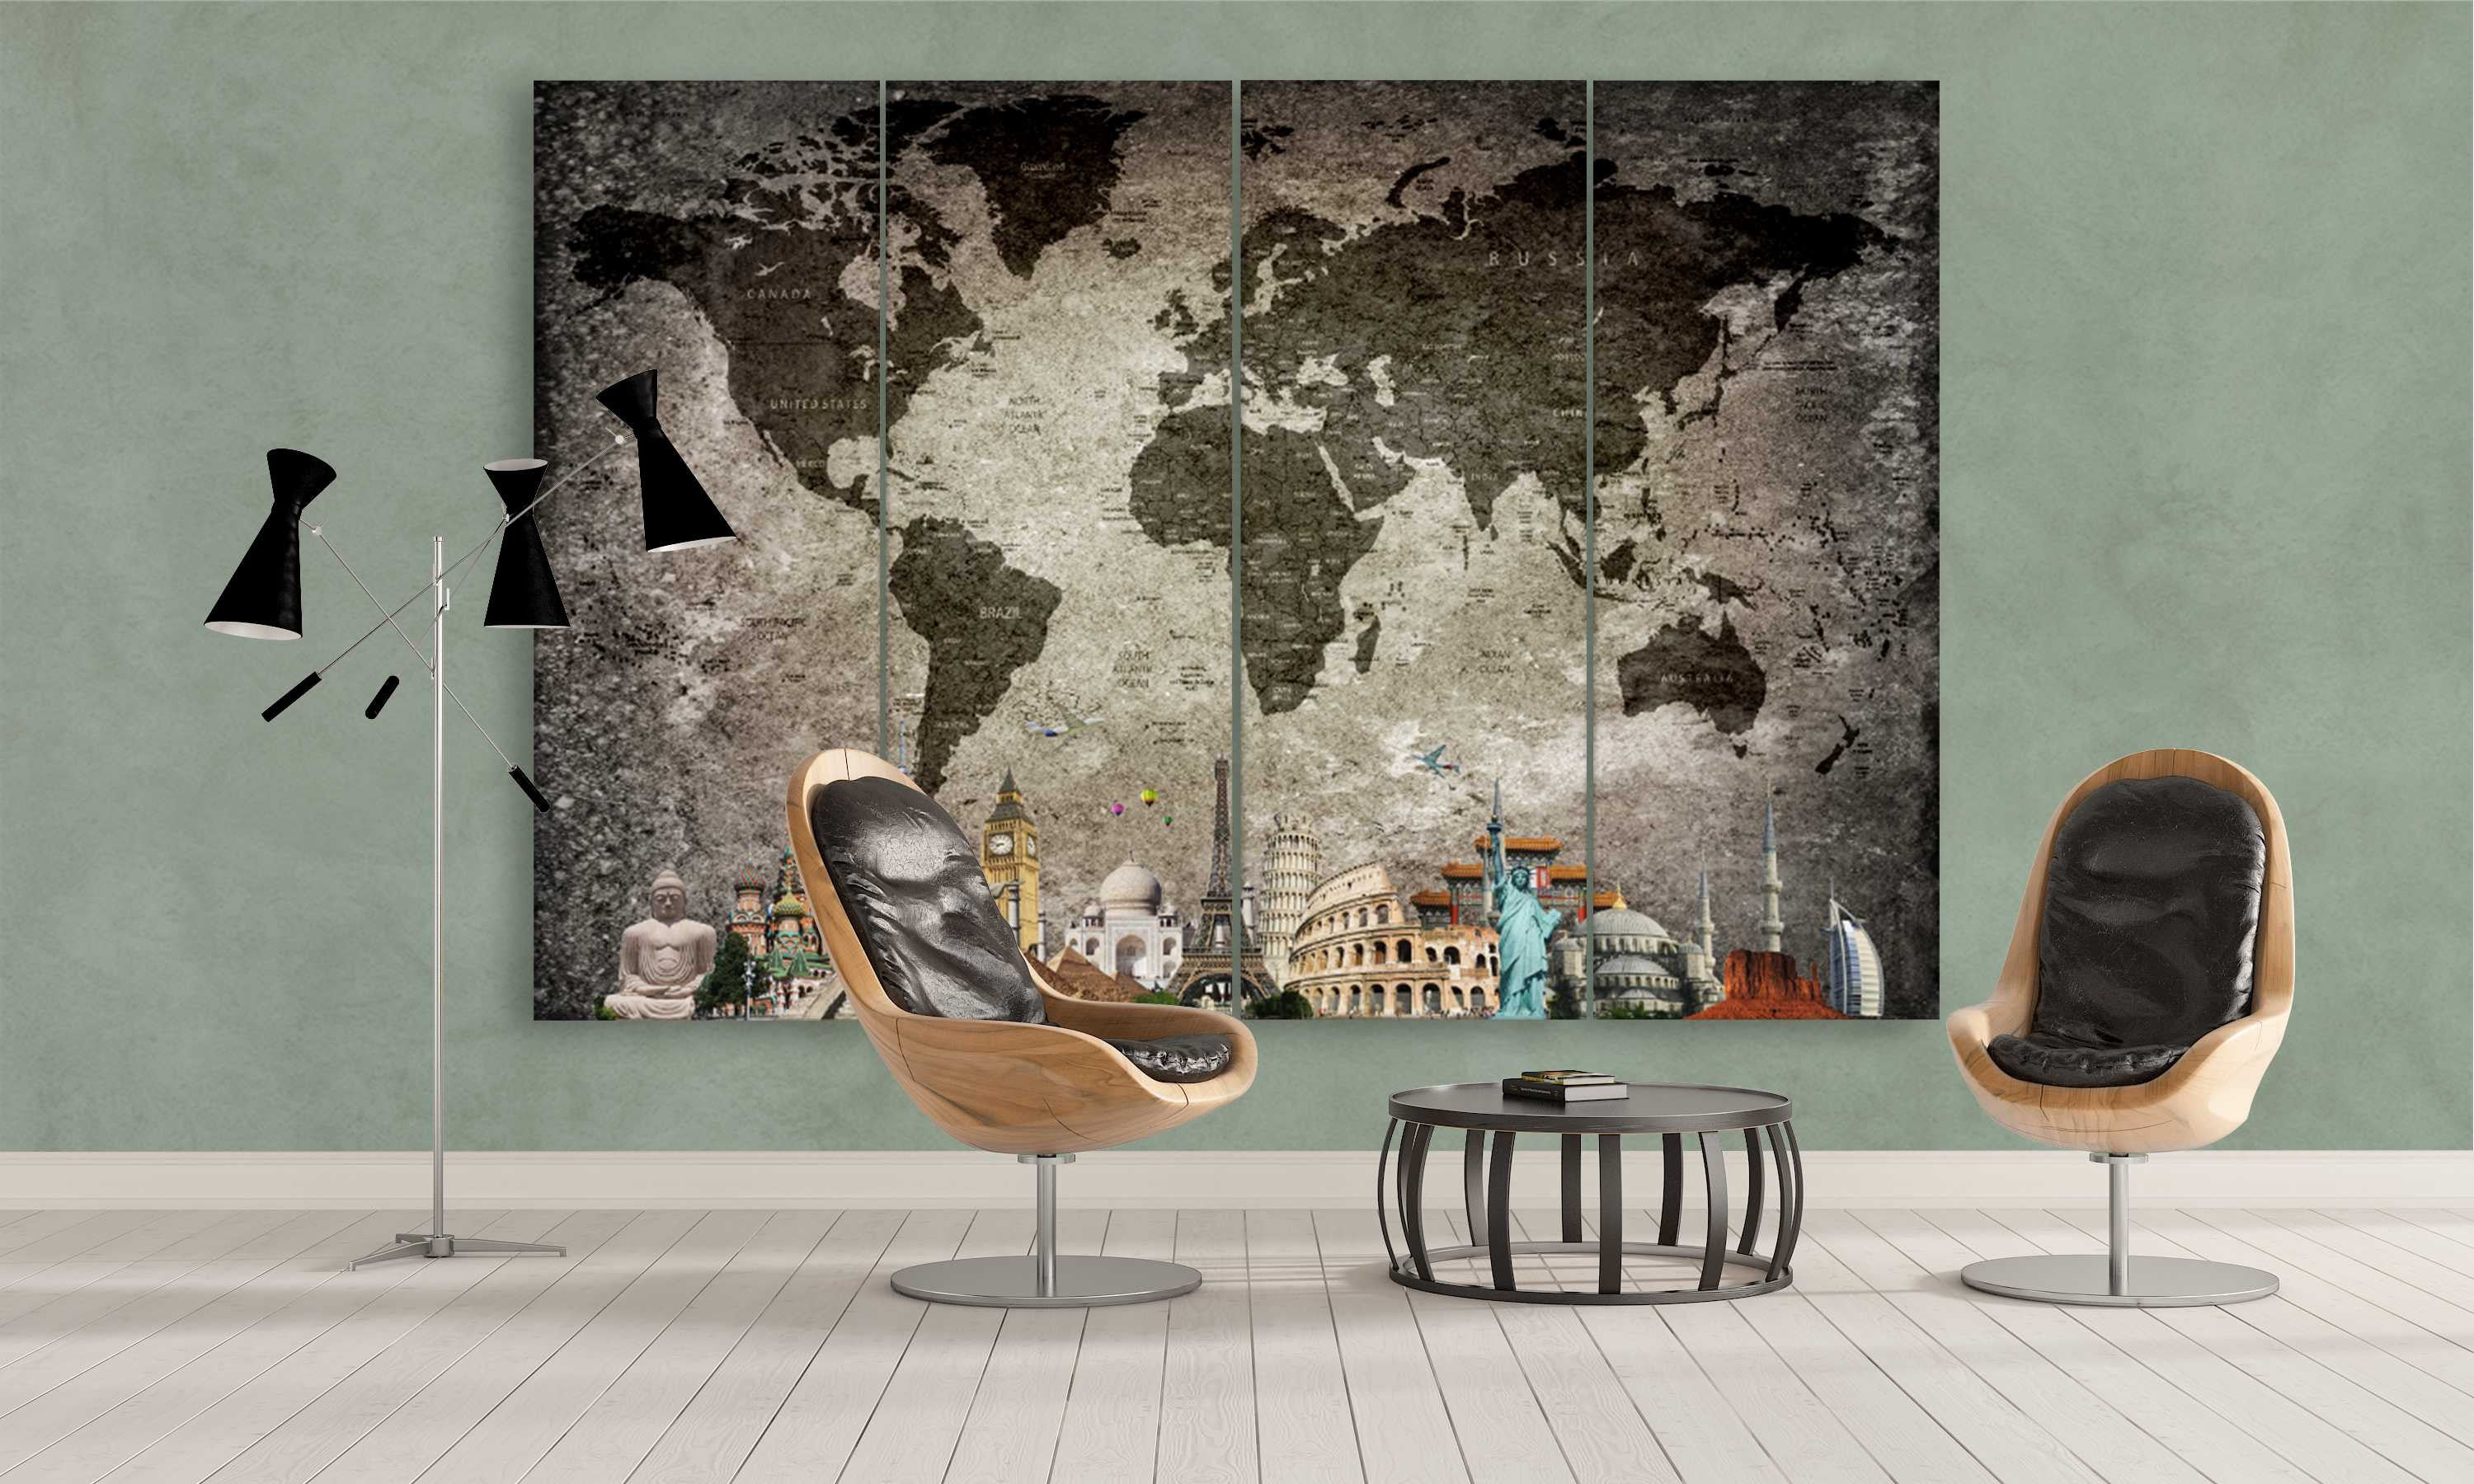 5 panel unique push pin world map canvas wall art with design on rock surface | Panelwallart.com